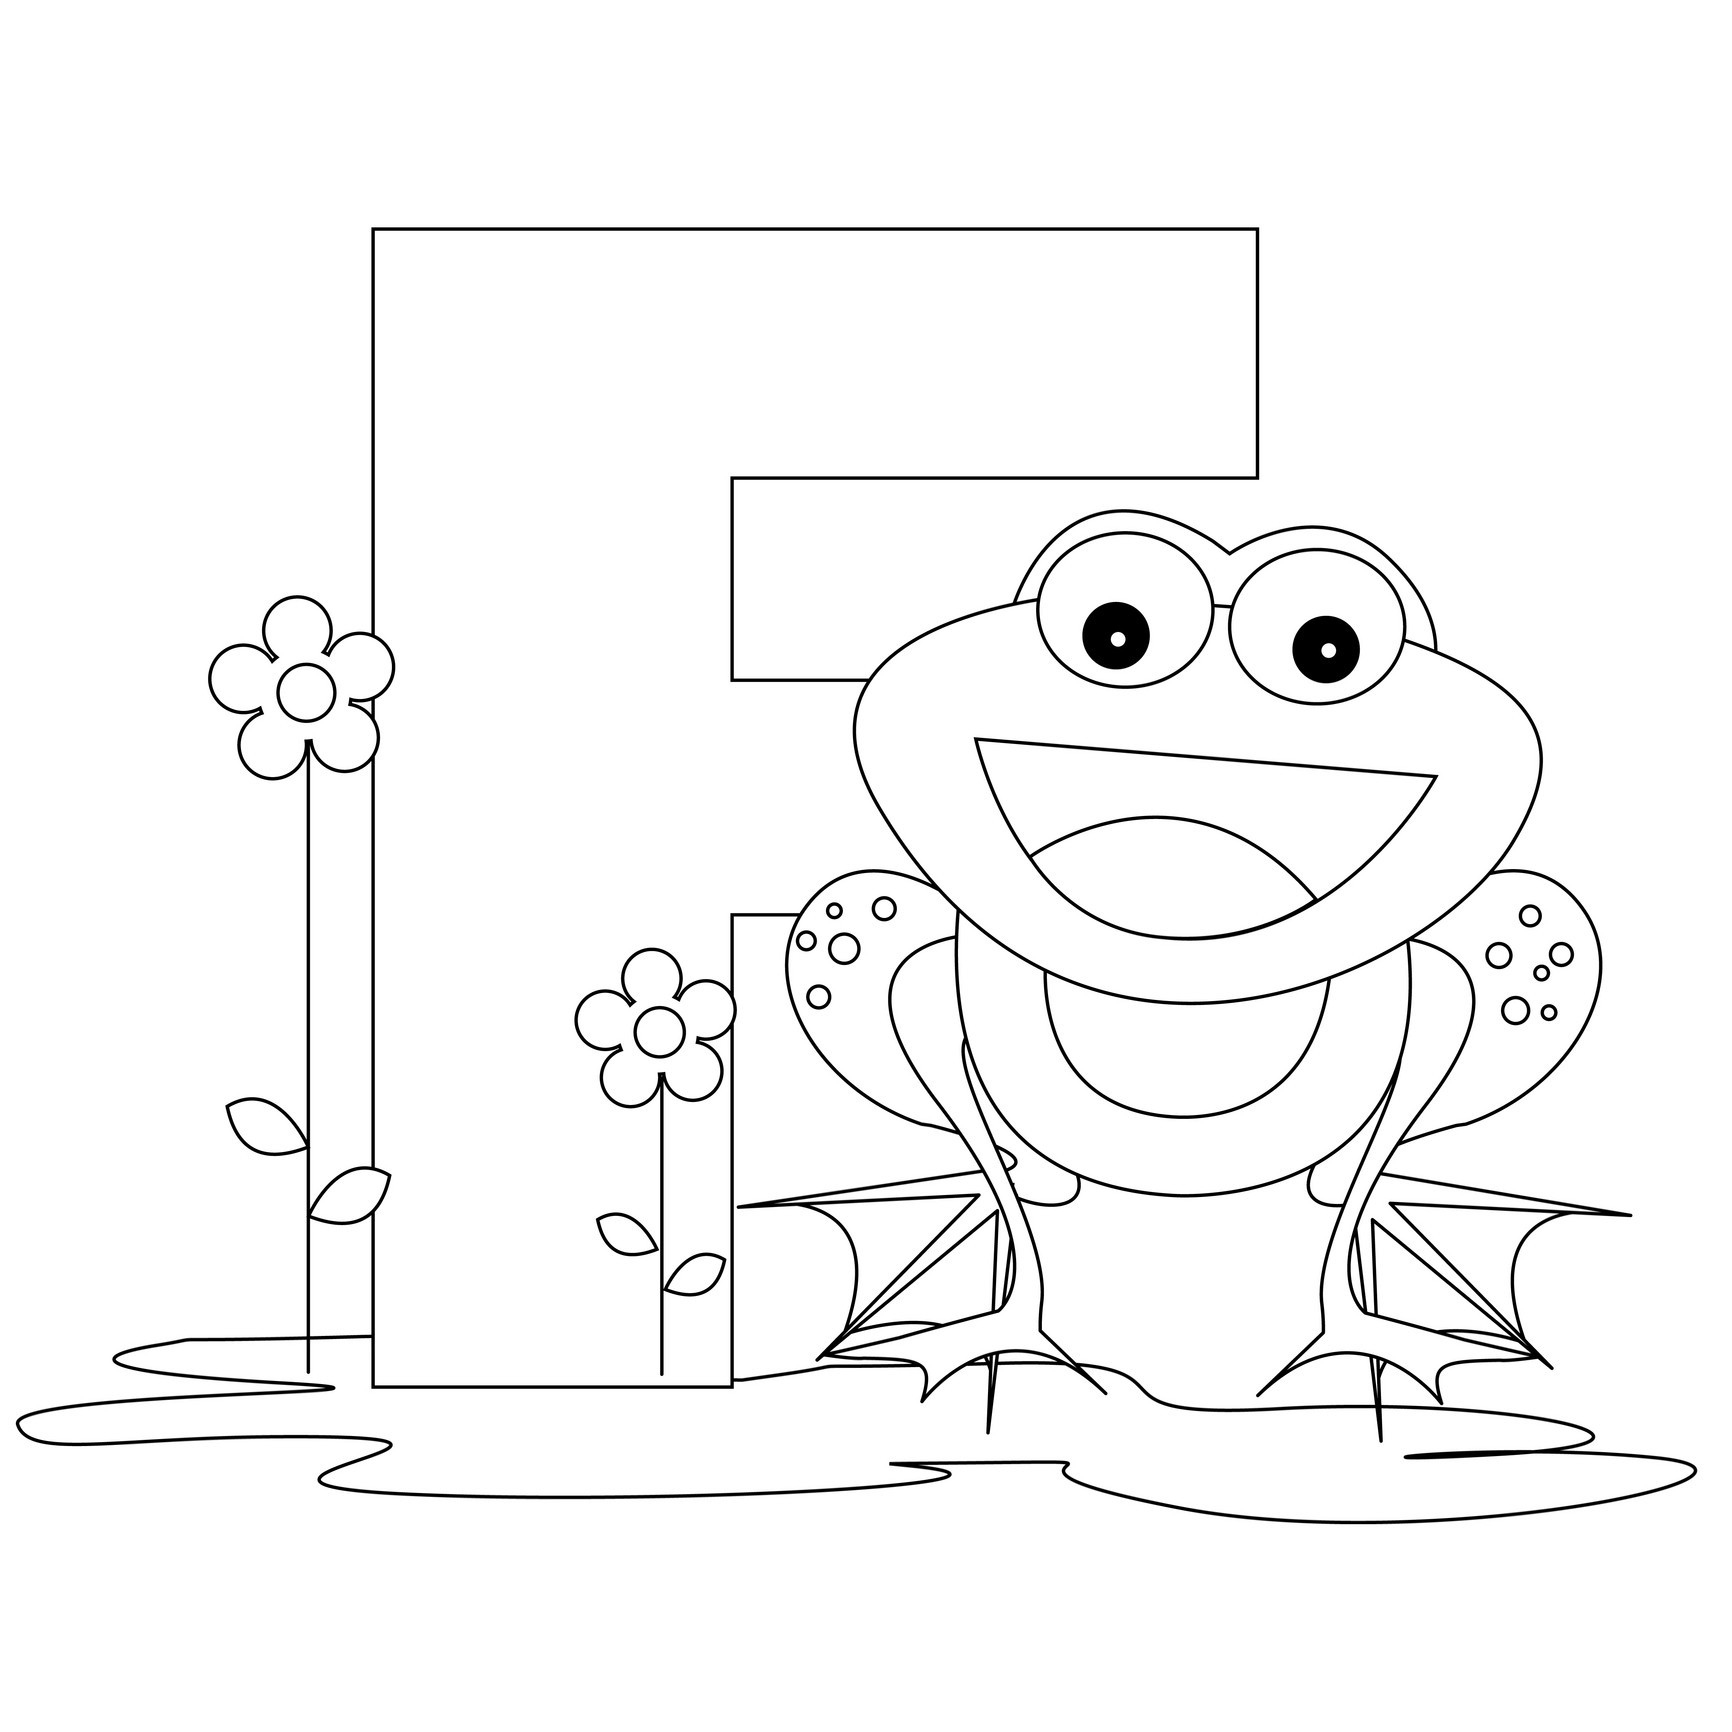 alphabet coloring pages download - photo#4